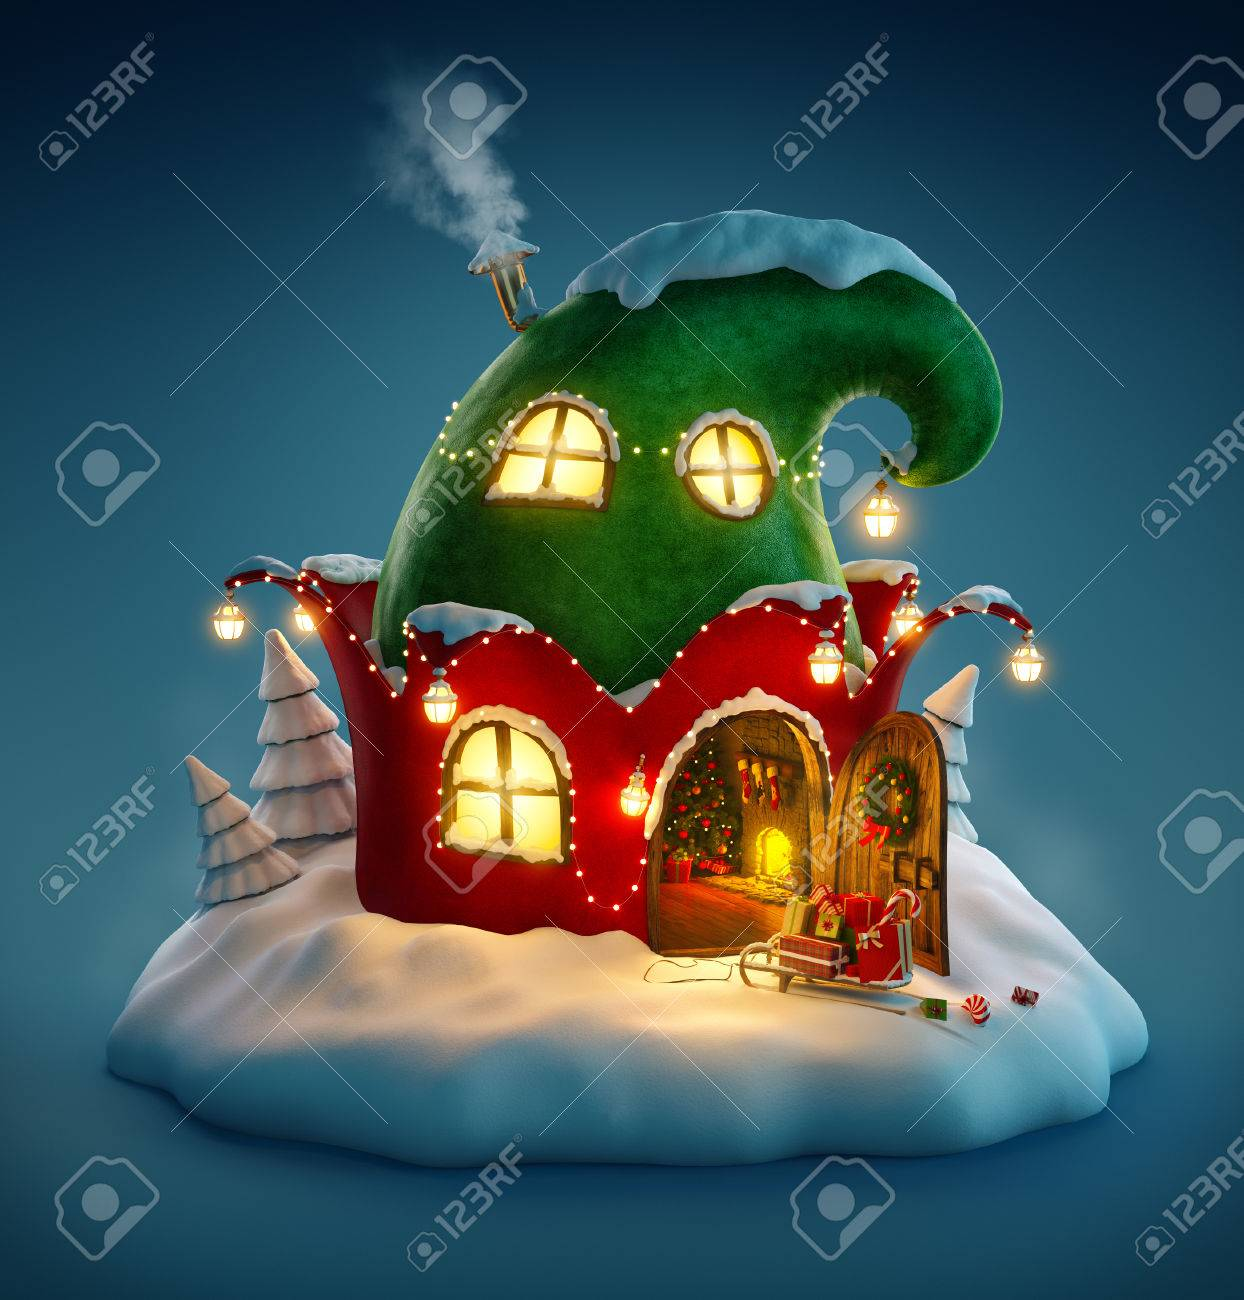 Amazing fairy house decorated at christmas in shape of elfs hat with opened door and fireplace inside. Unusual christmas illustration. Stock Illustration - 46807291